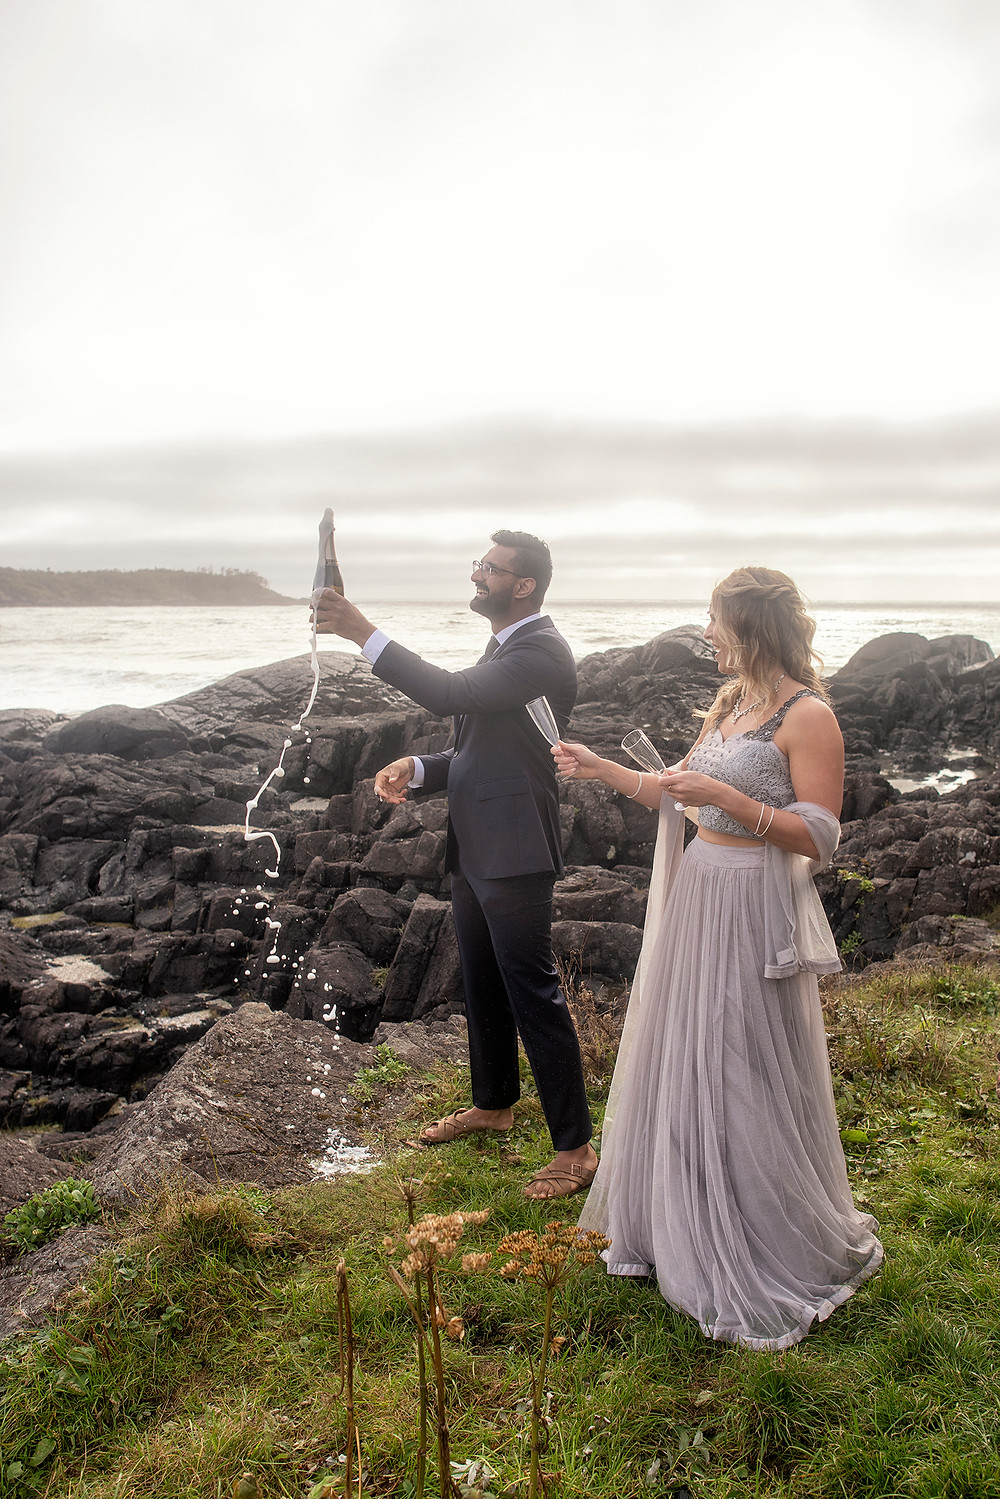 Man pops champagne at their small wedding in Tofino. Photographed by Tofino wedding photographer Kaitlyn Shea.